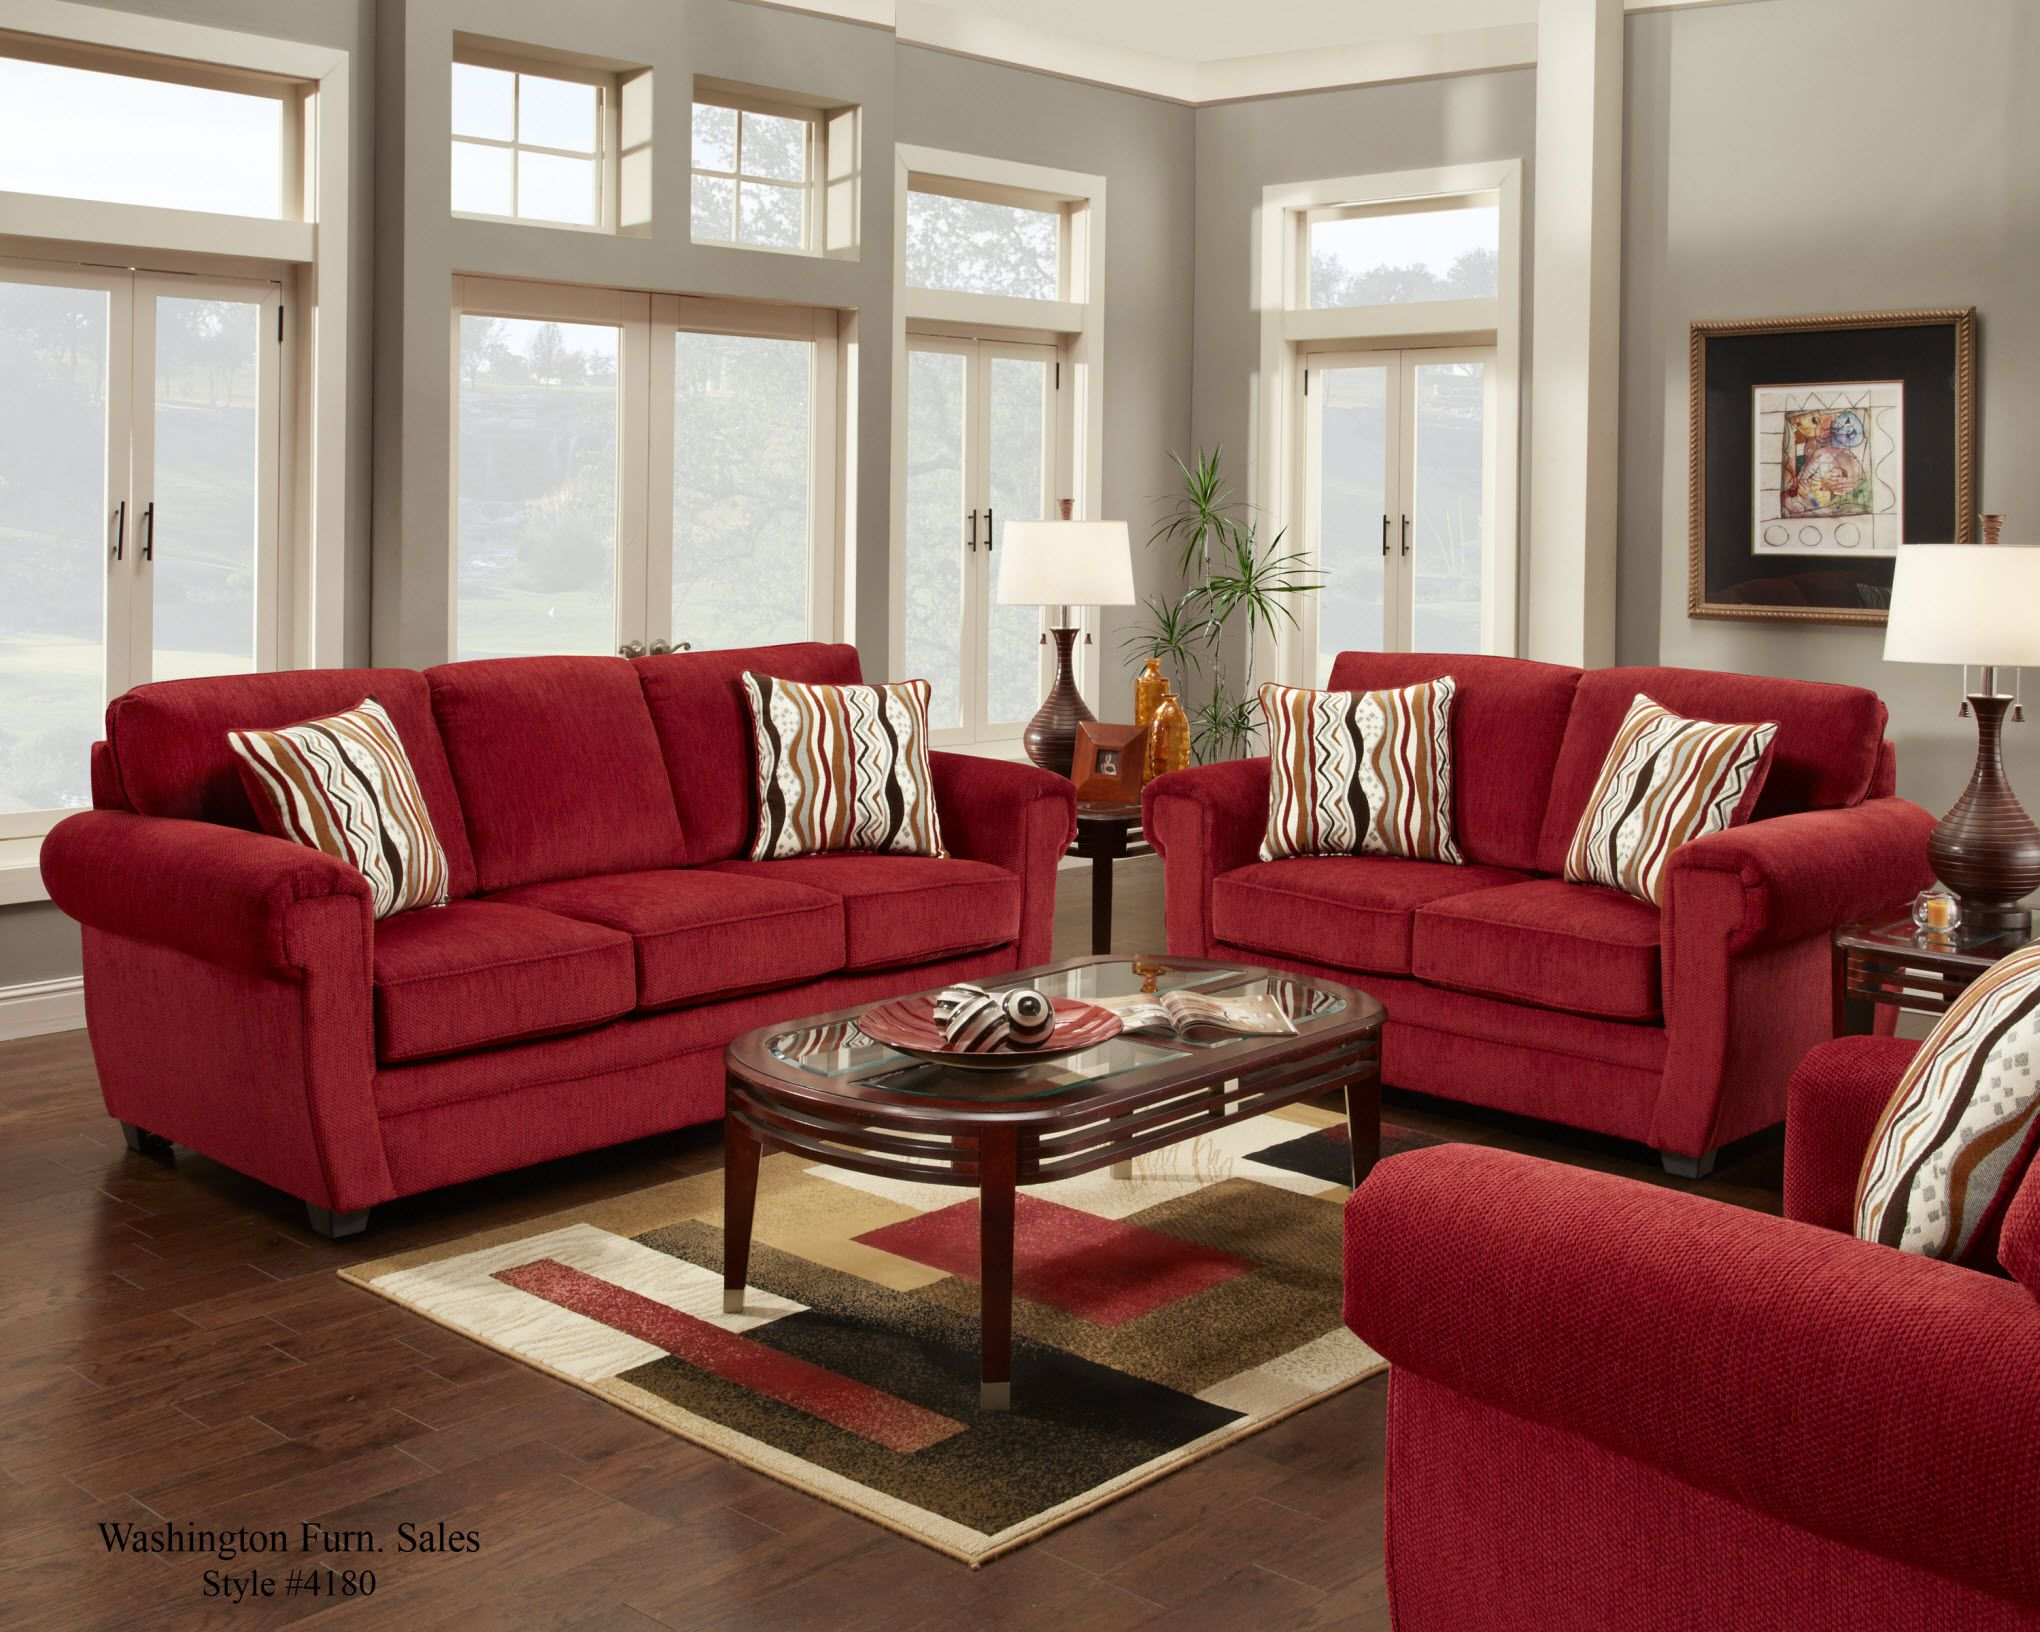 4180 washington samson red sofa and loveseat www for Lounge room accessories